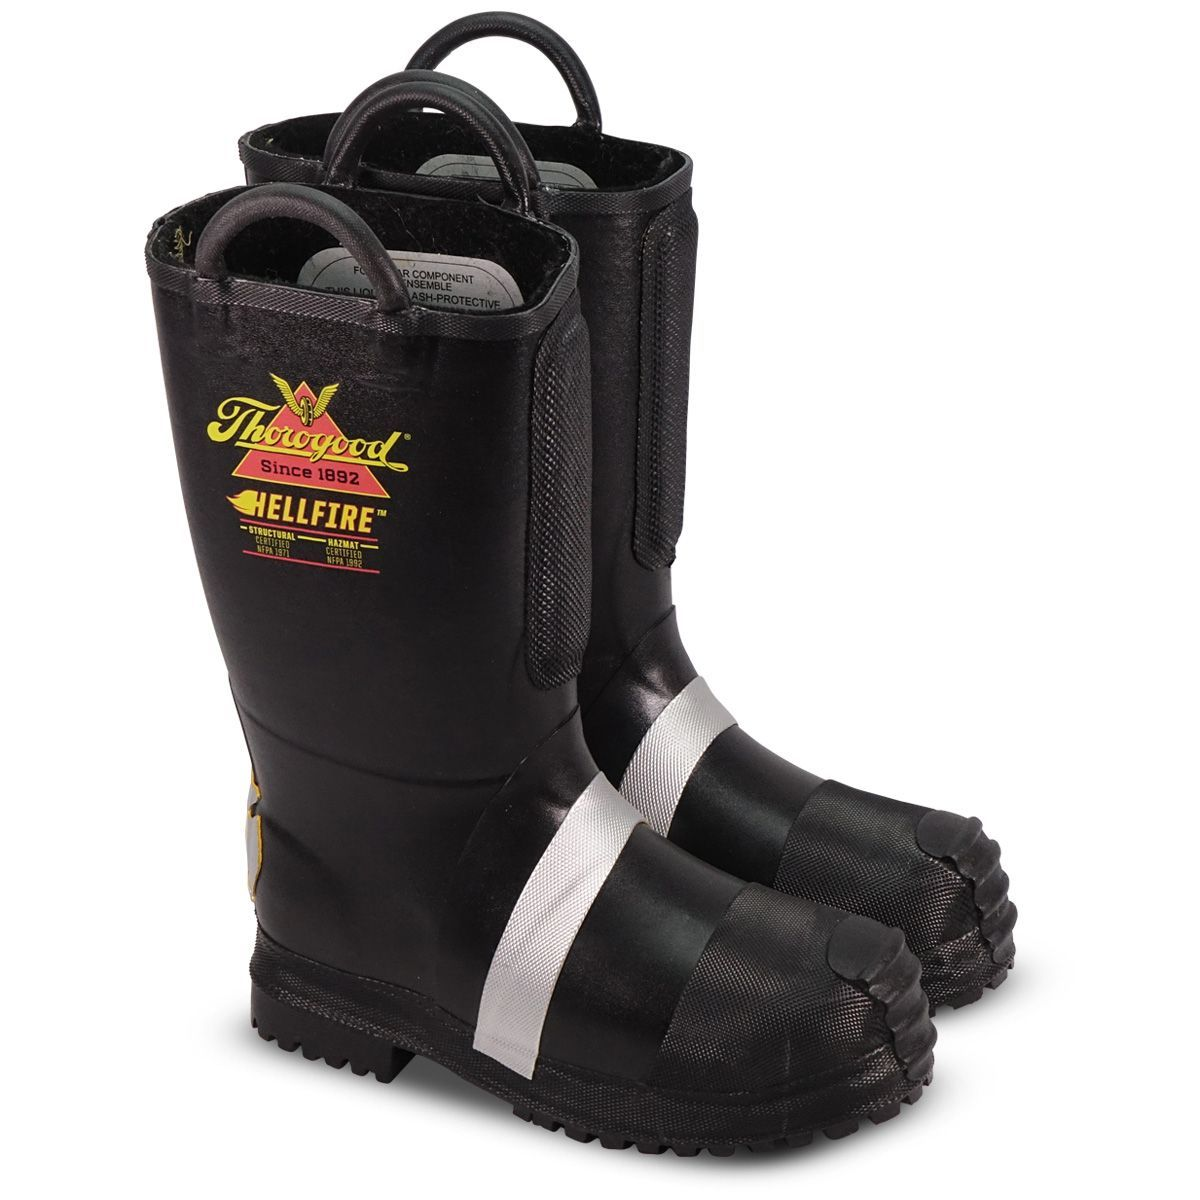 04ee0f61a6f LION by Thorogood Hellfire Rubber Fire Boot W/ Lug Sole 807-6003